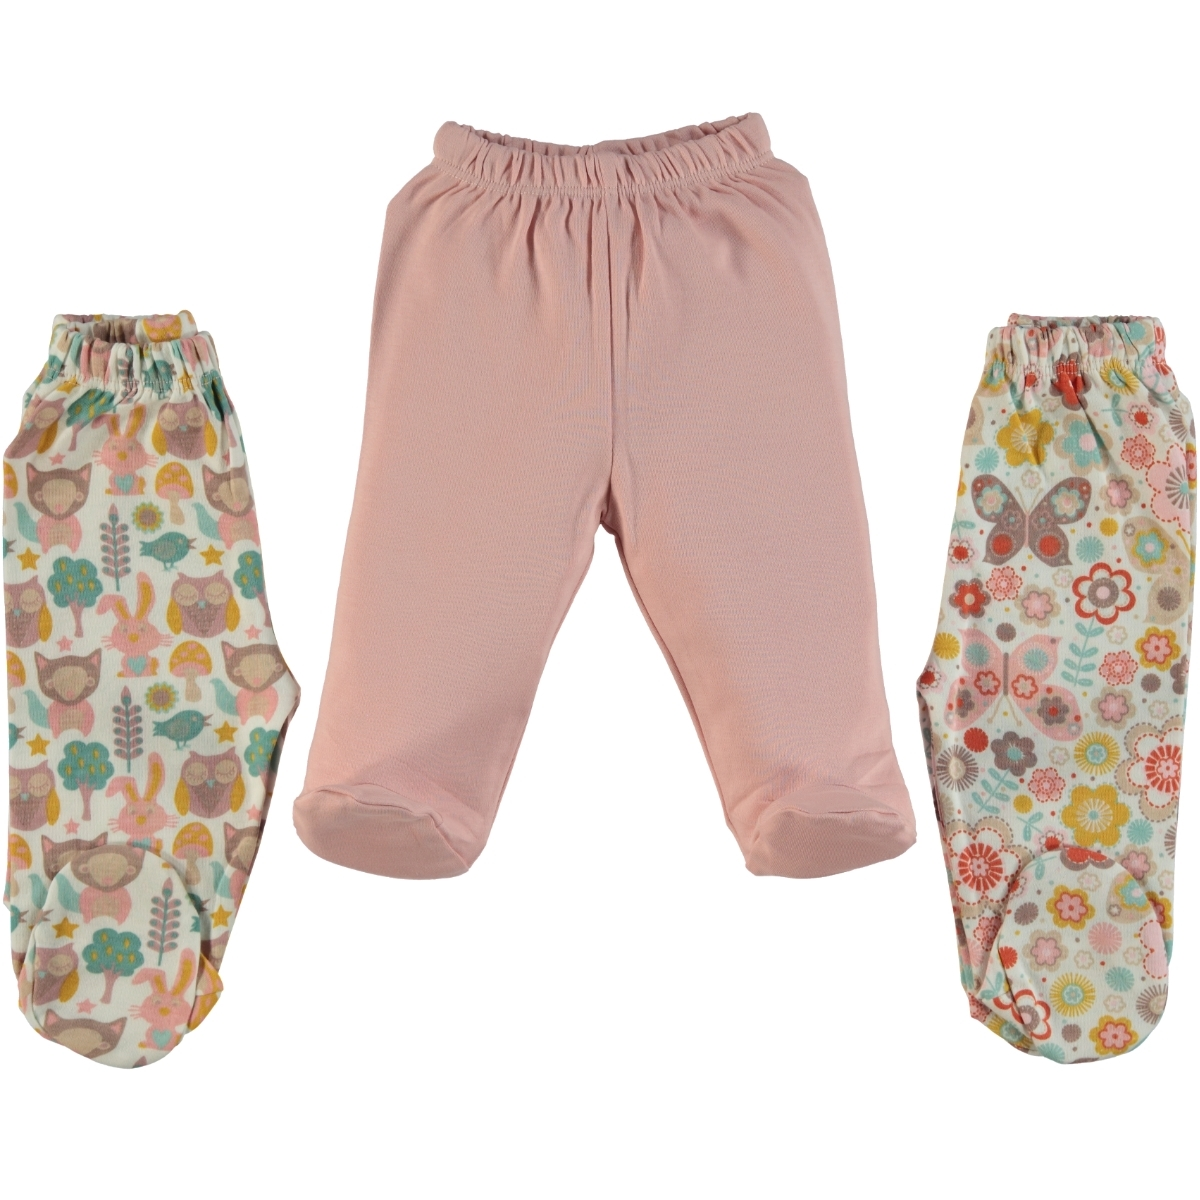 Misket Oh Baby, Booty Baby Girl Single Alt 1-9 Months, Powder Pink